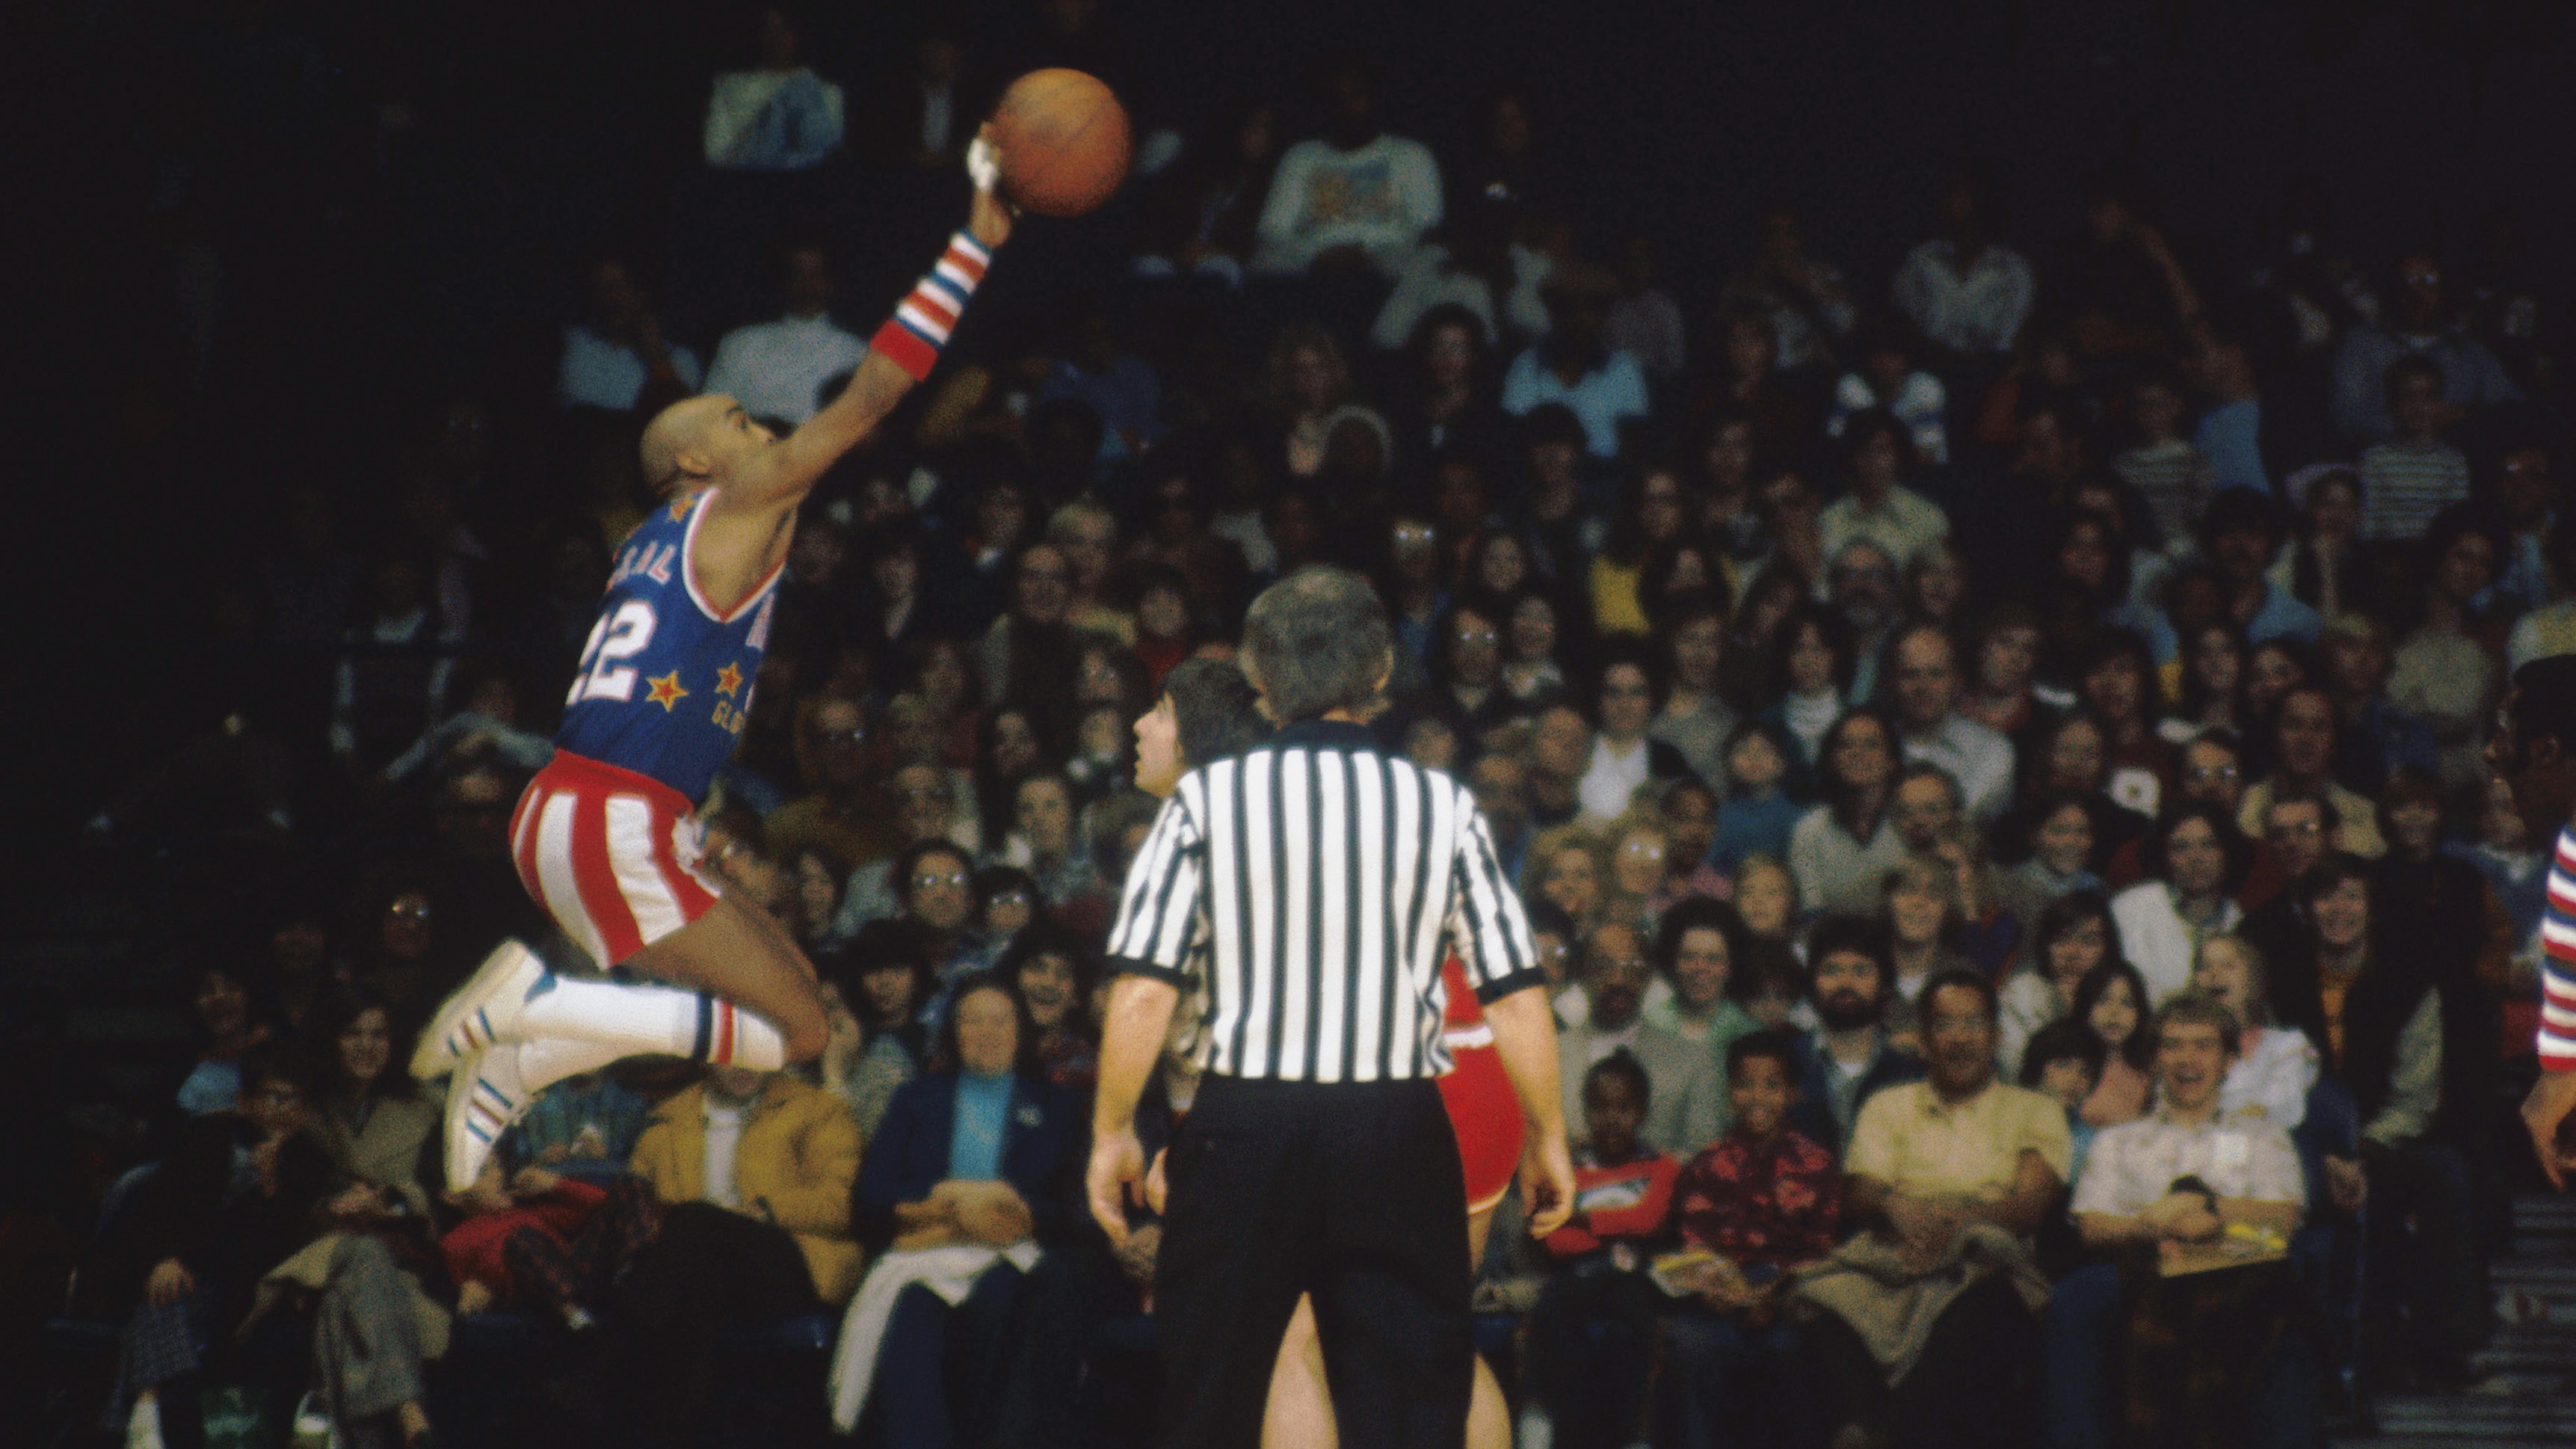 """Harlem Globetrotters' Fred """"Curly"""" Neal, shown here during a 1975 game, was known as a master dribbler."""